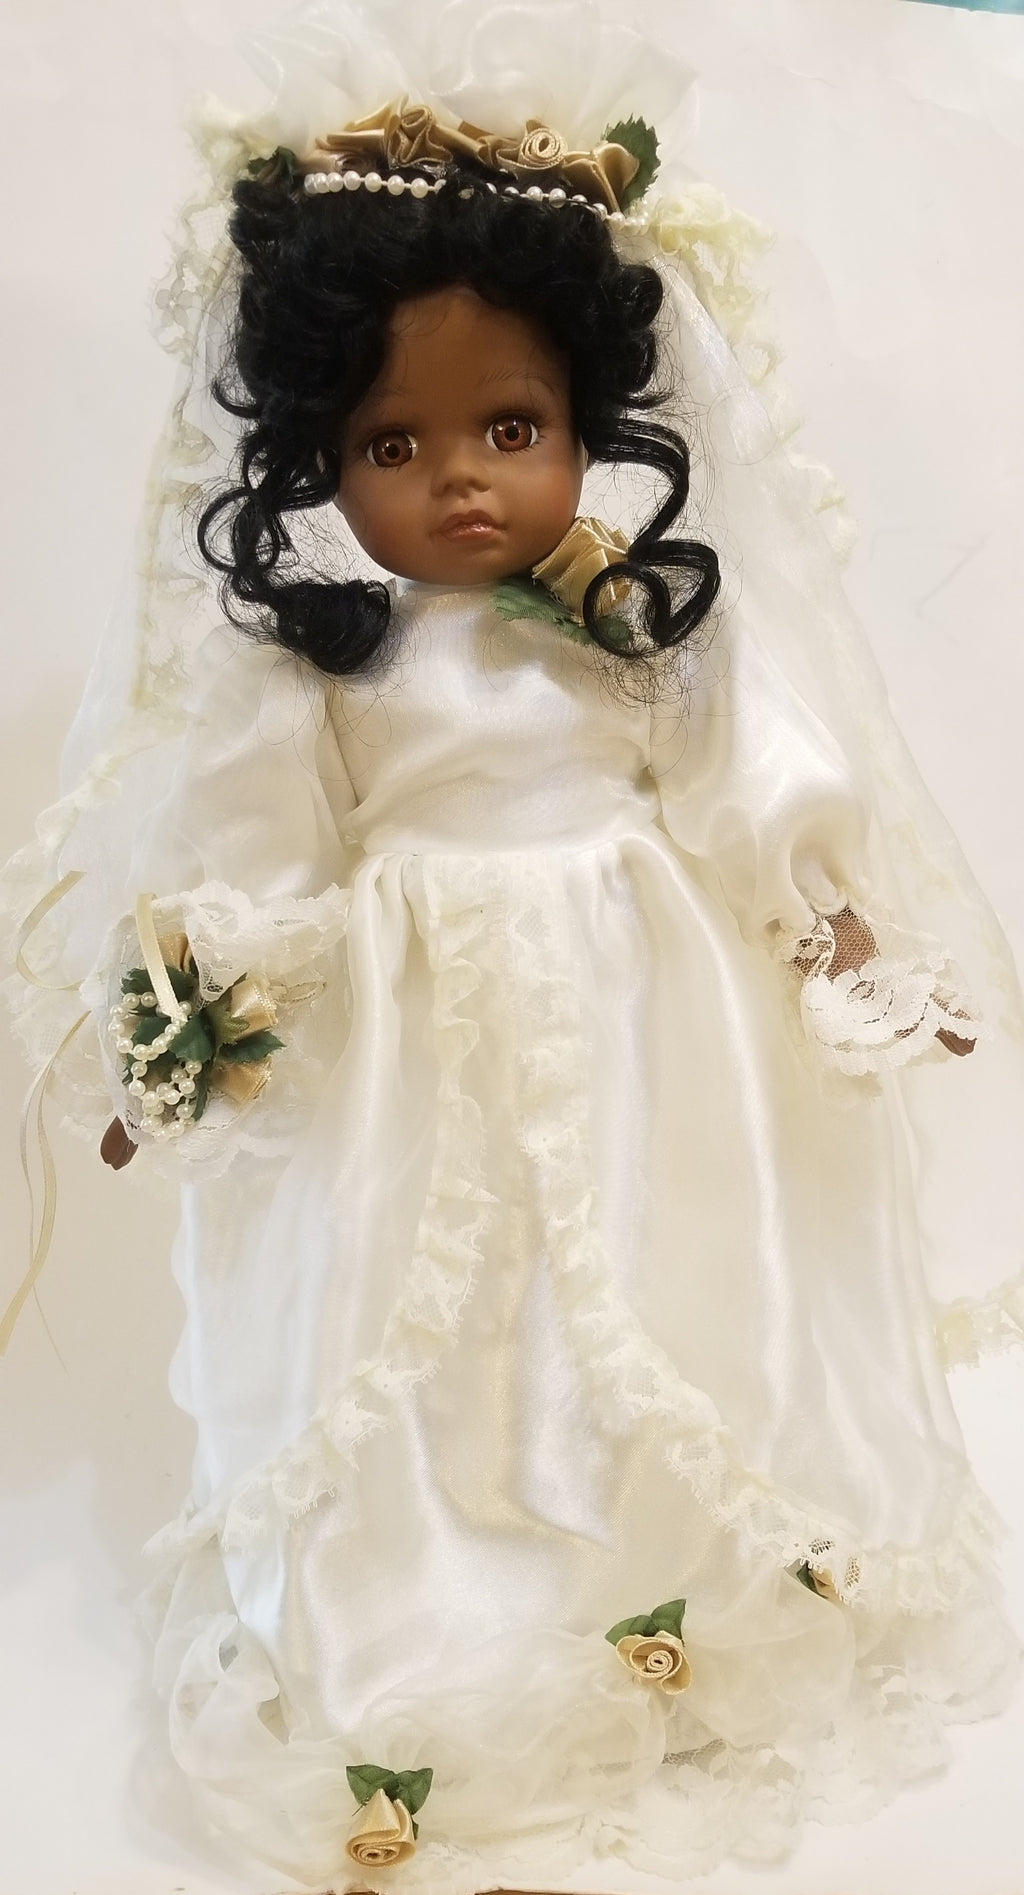 African American Black bride doll porcelain